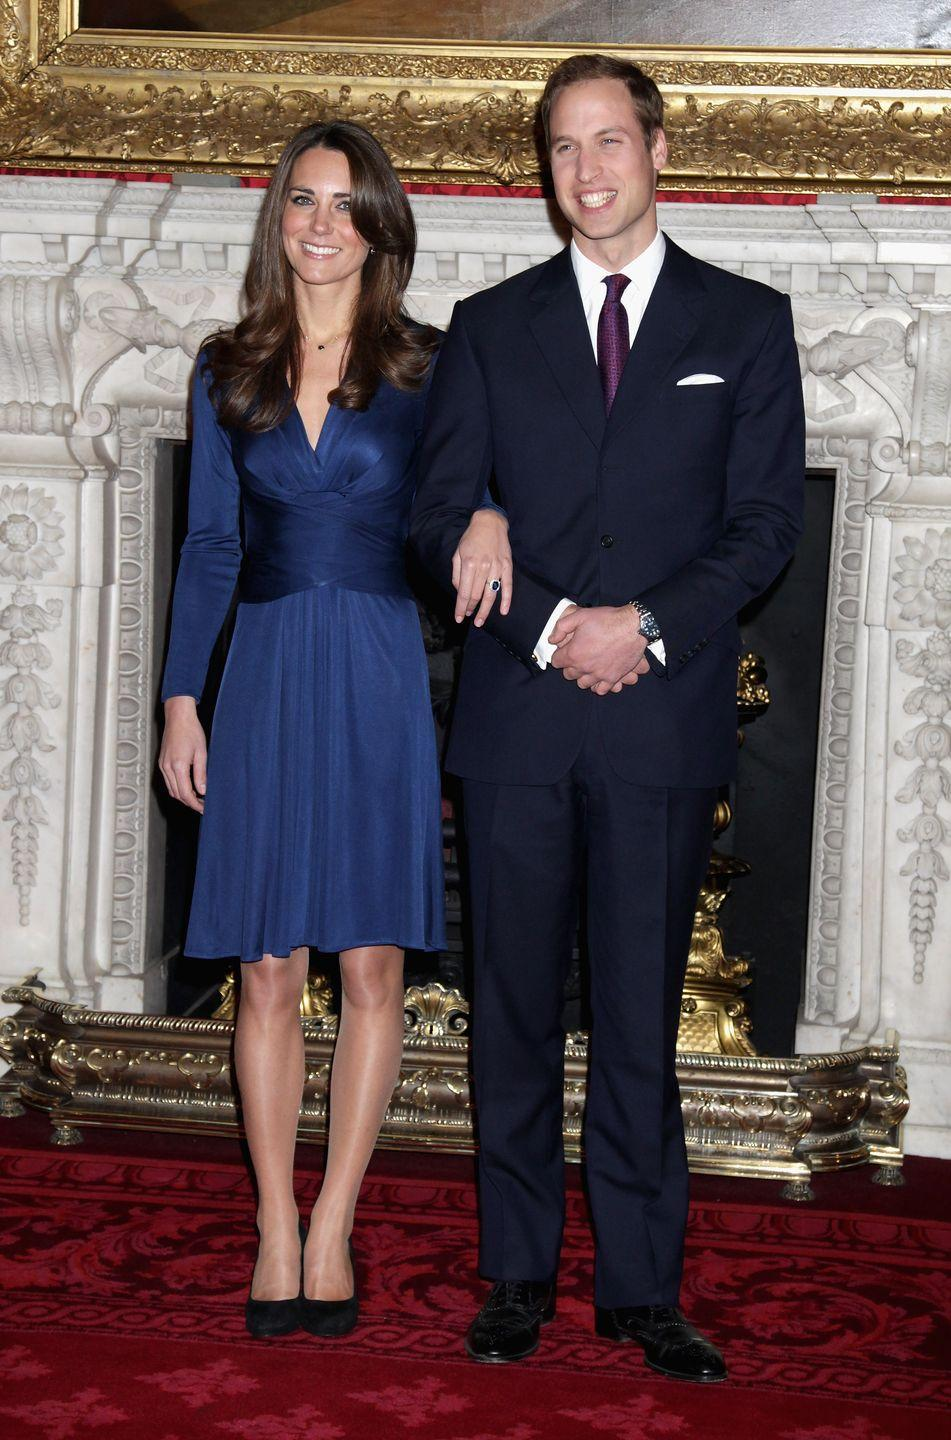 <p>Prince William proposed to his longtime girlfriend, Kate Middleton, while on vacation in Kenya. The couple announced their engagement to the press at St. James's Palace in November 2010 and were married in April the following year at Westminster Abbey. </p>